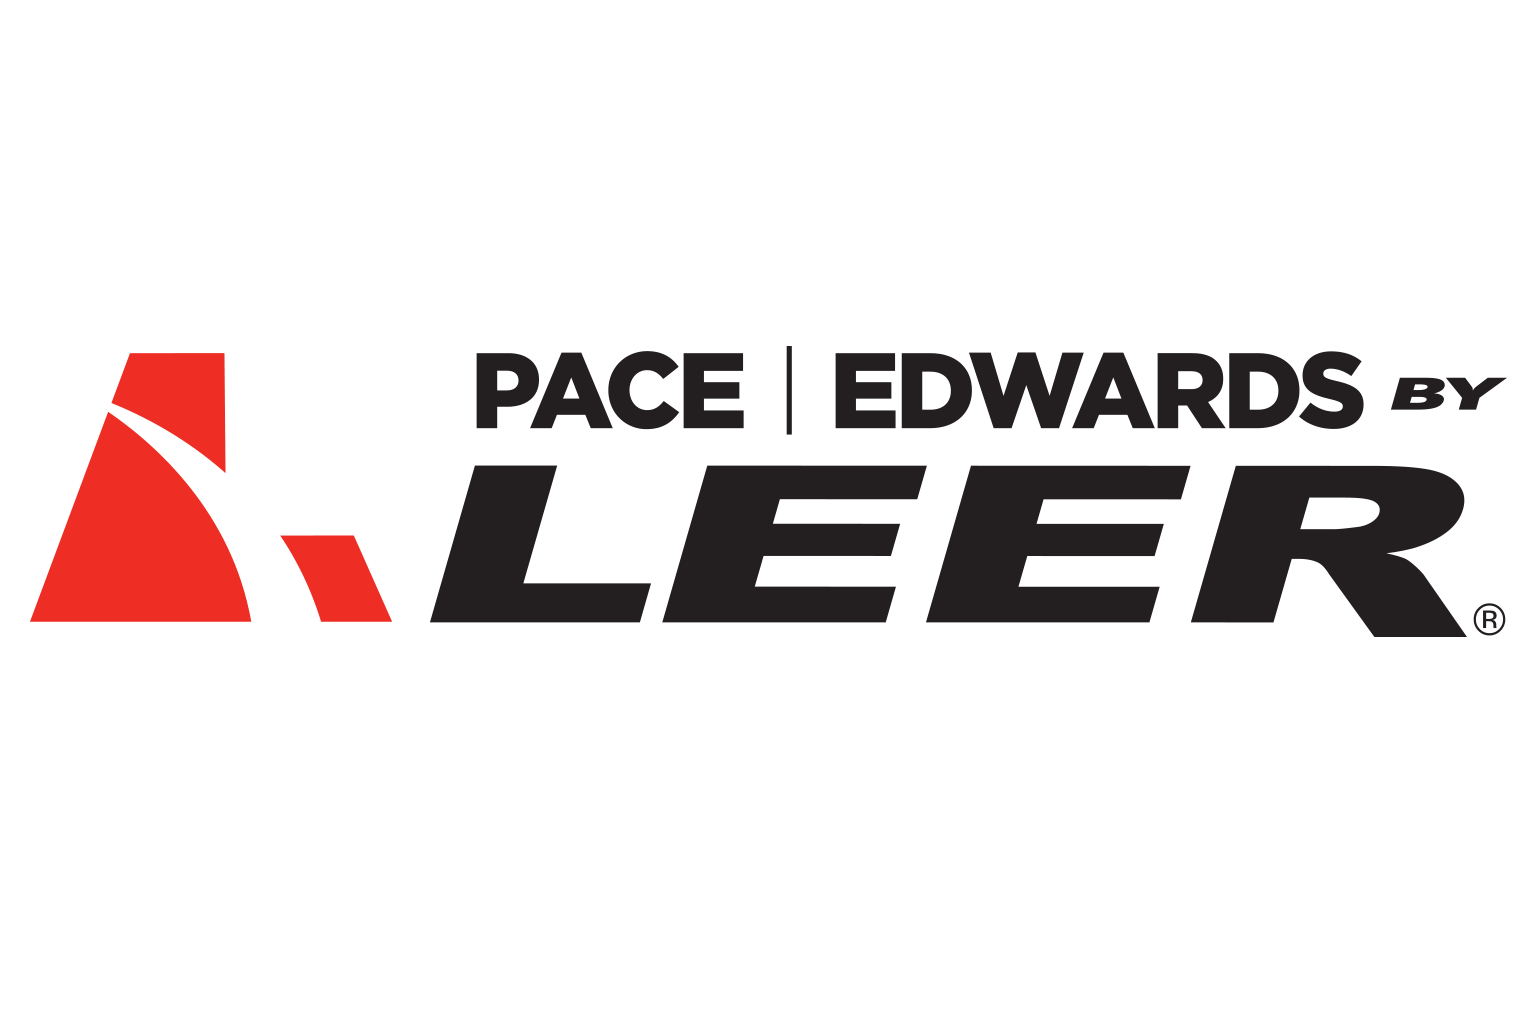 Pace Edwards Company